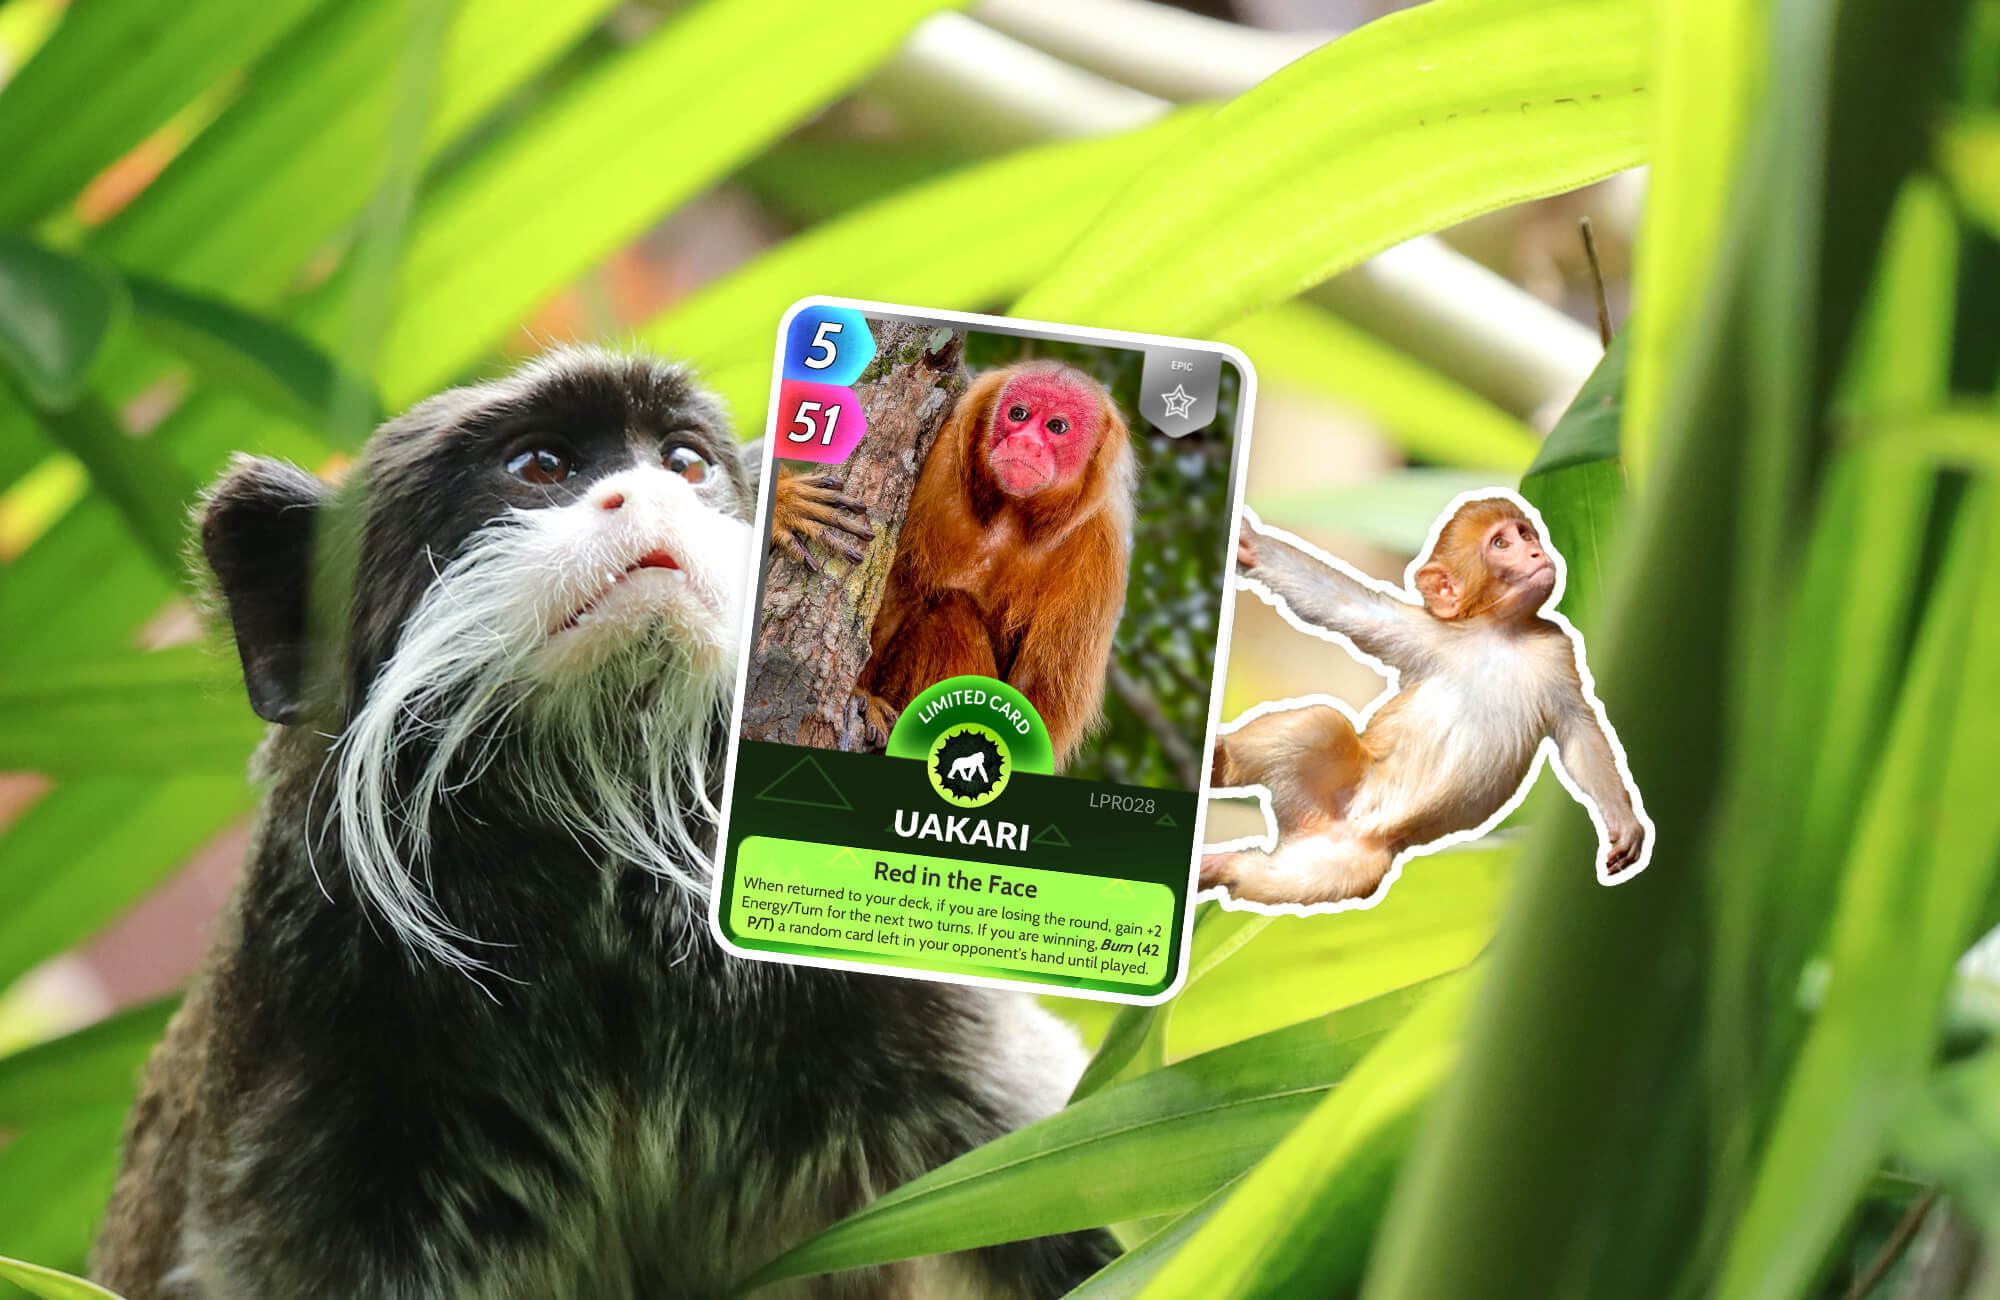 The new primates pack showing the Uakari card